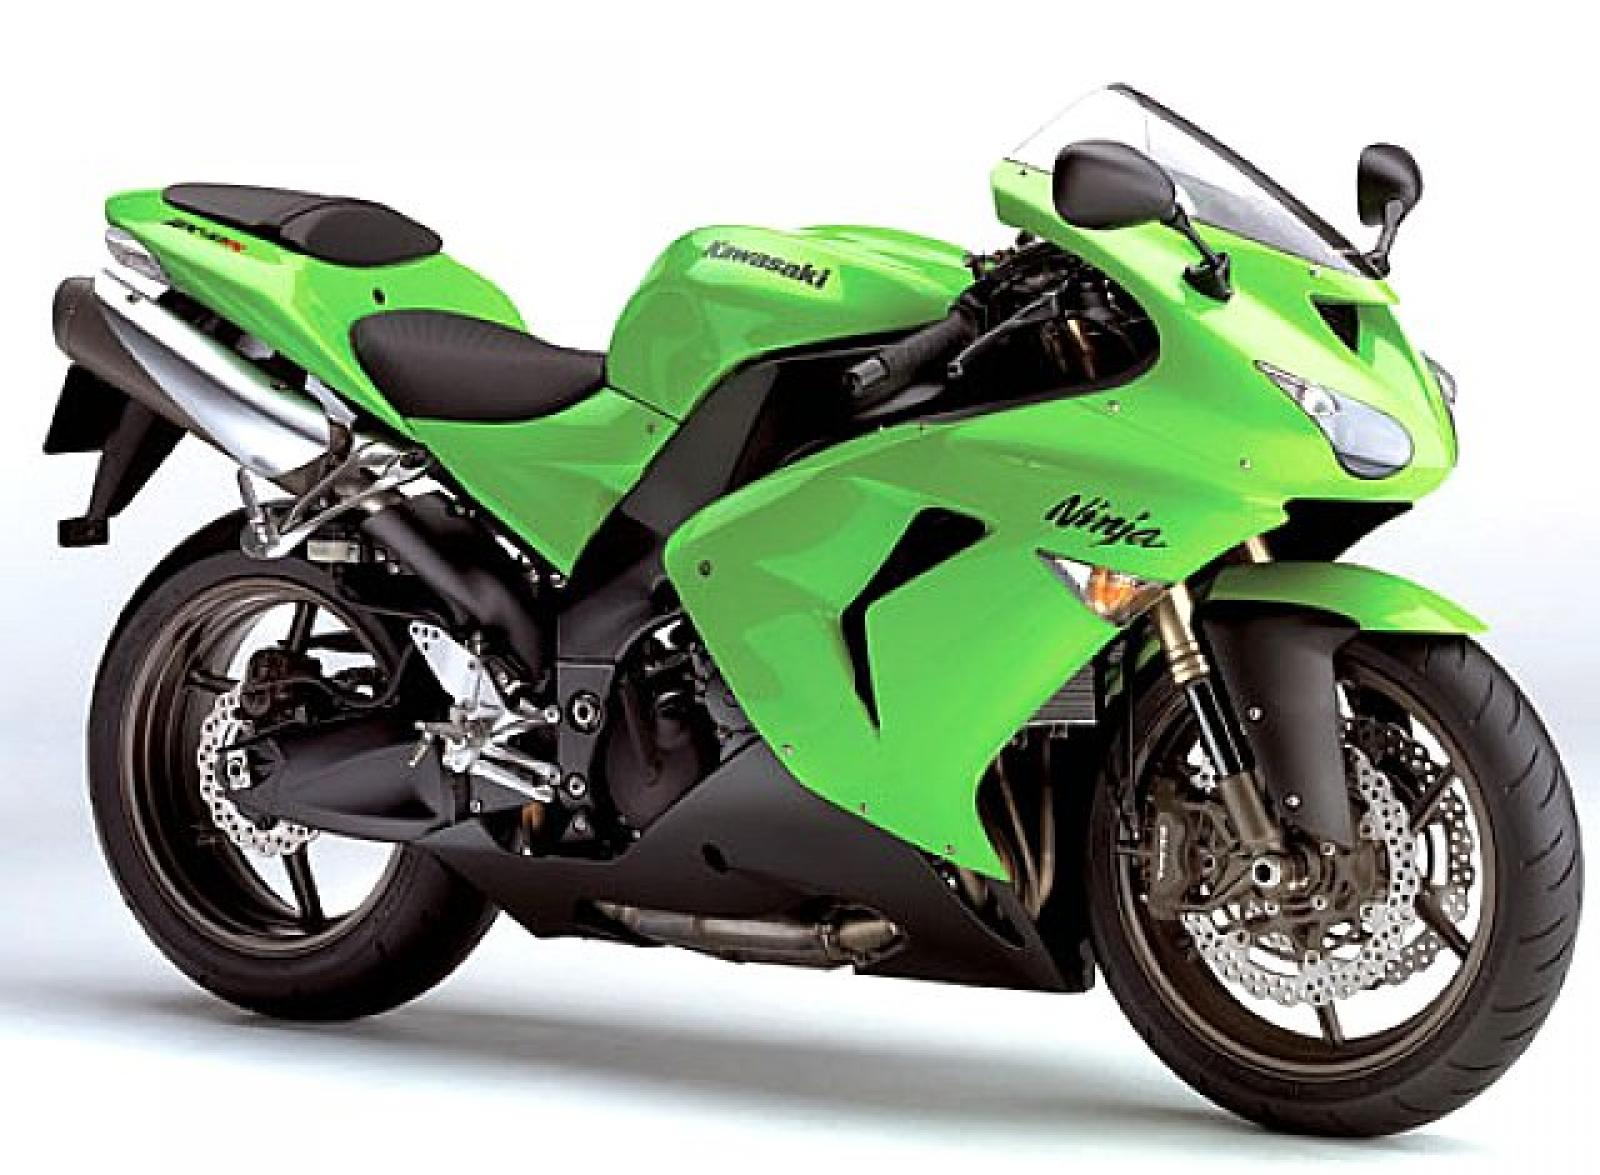 2006 kawasaki ninja zx 10r moto zombdrive com. Black Bedroom Furniture Sets. Home Design Ideas